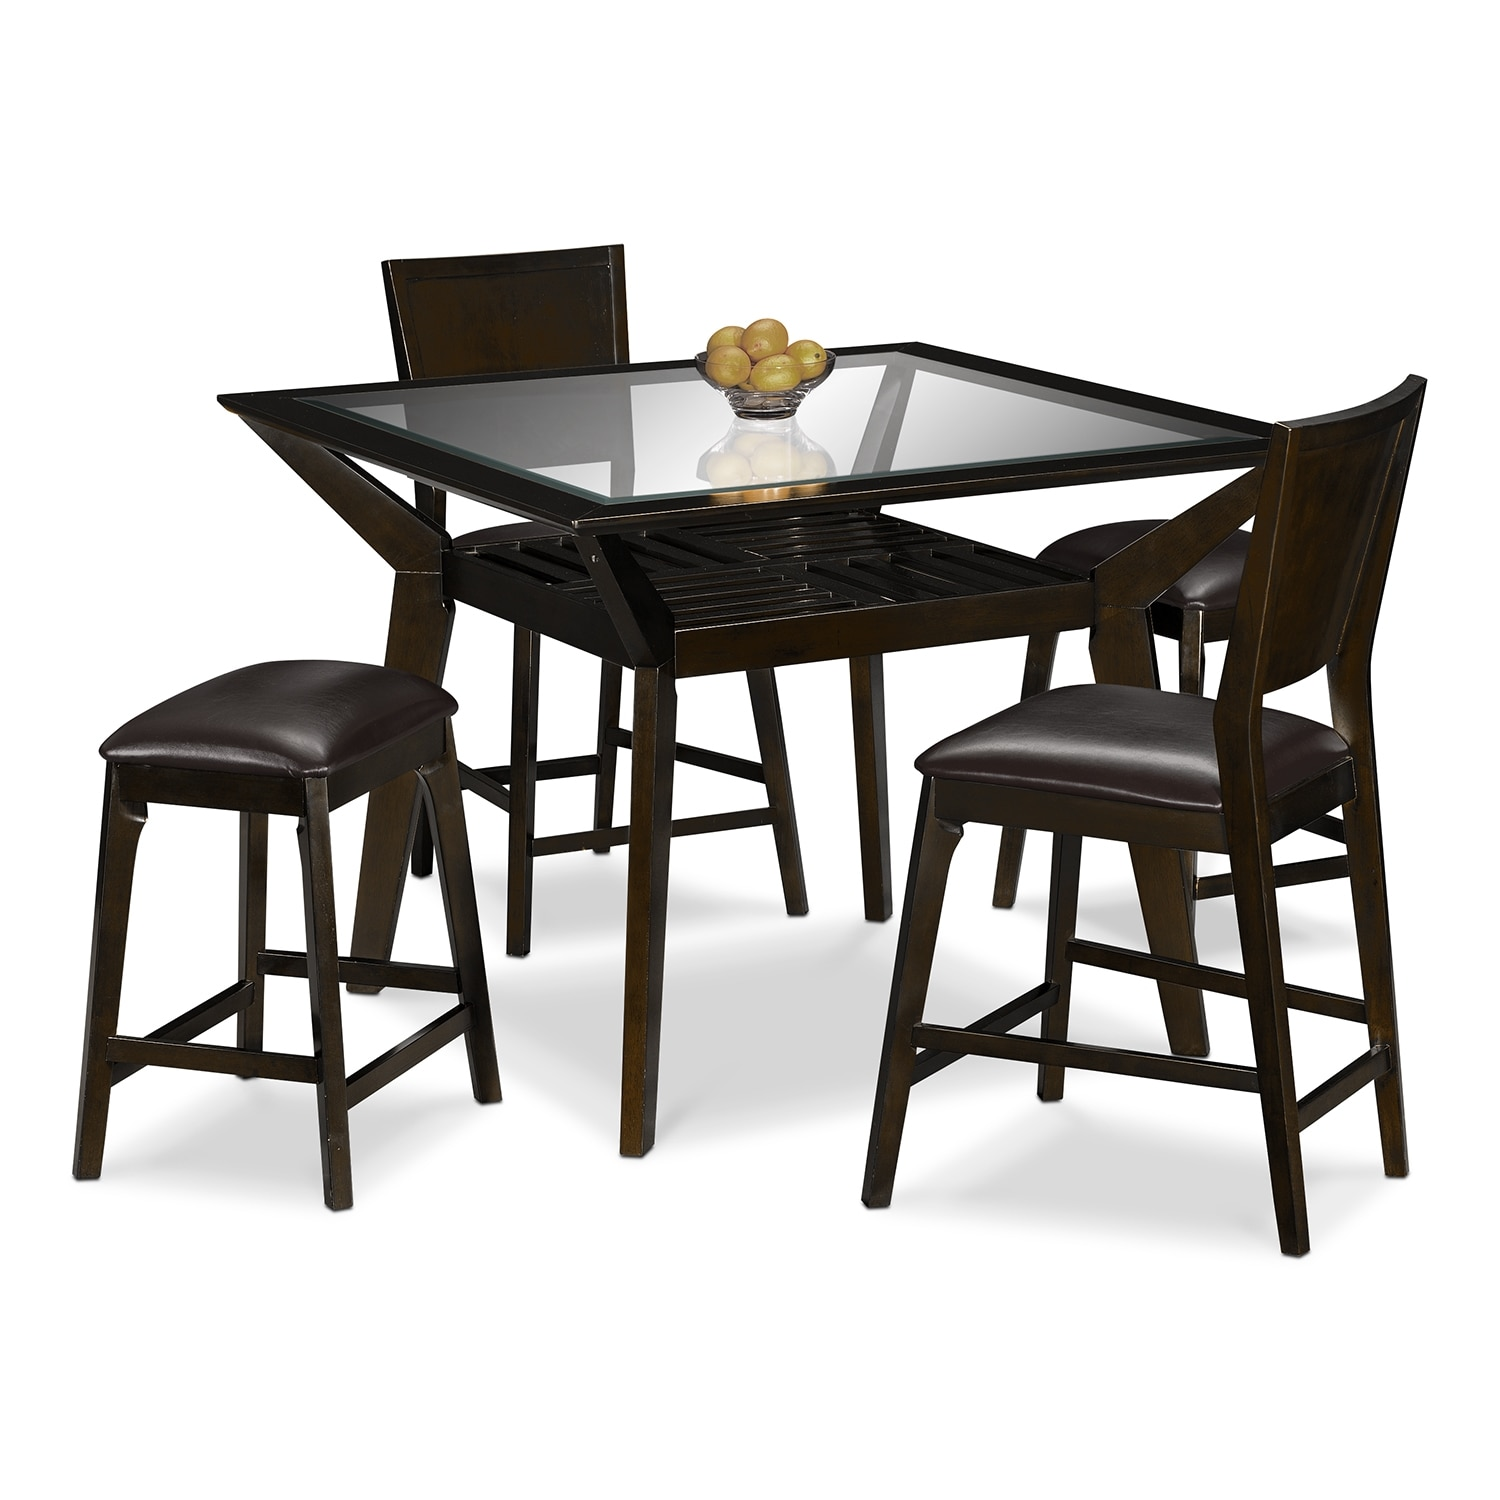 Dining Room Furniture - Mystic 5 Pc. Counter-Height Dinette w/ 2 Backless Stools